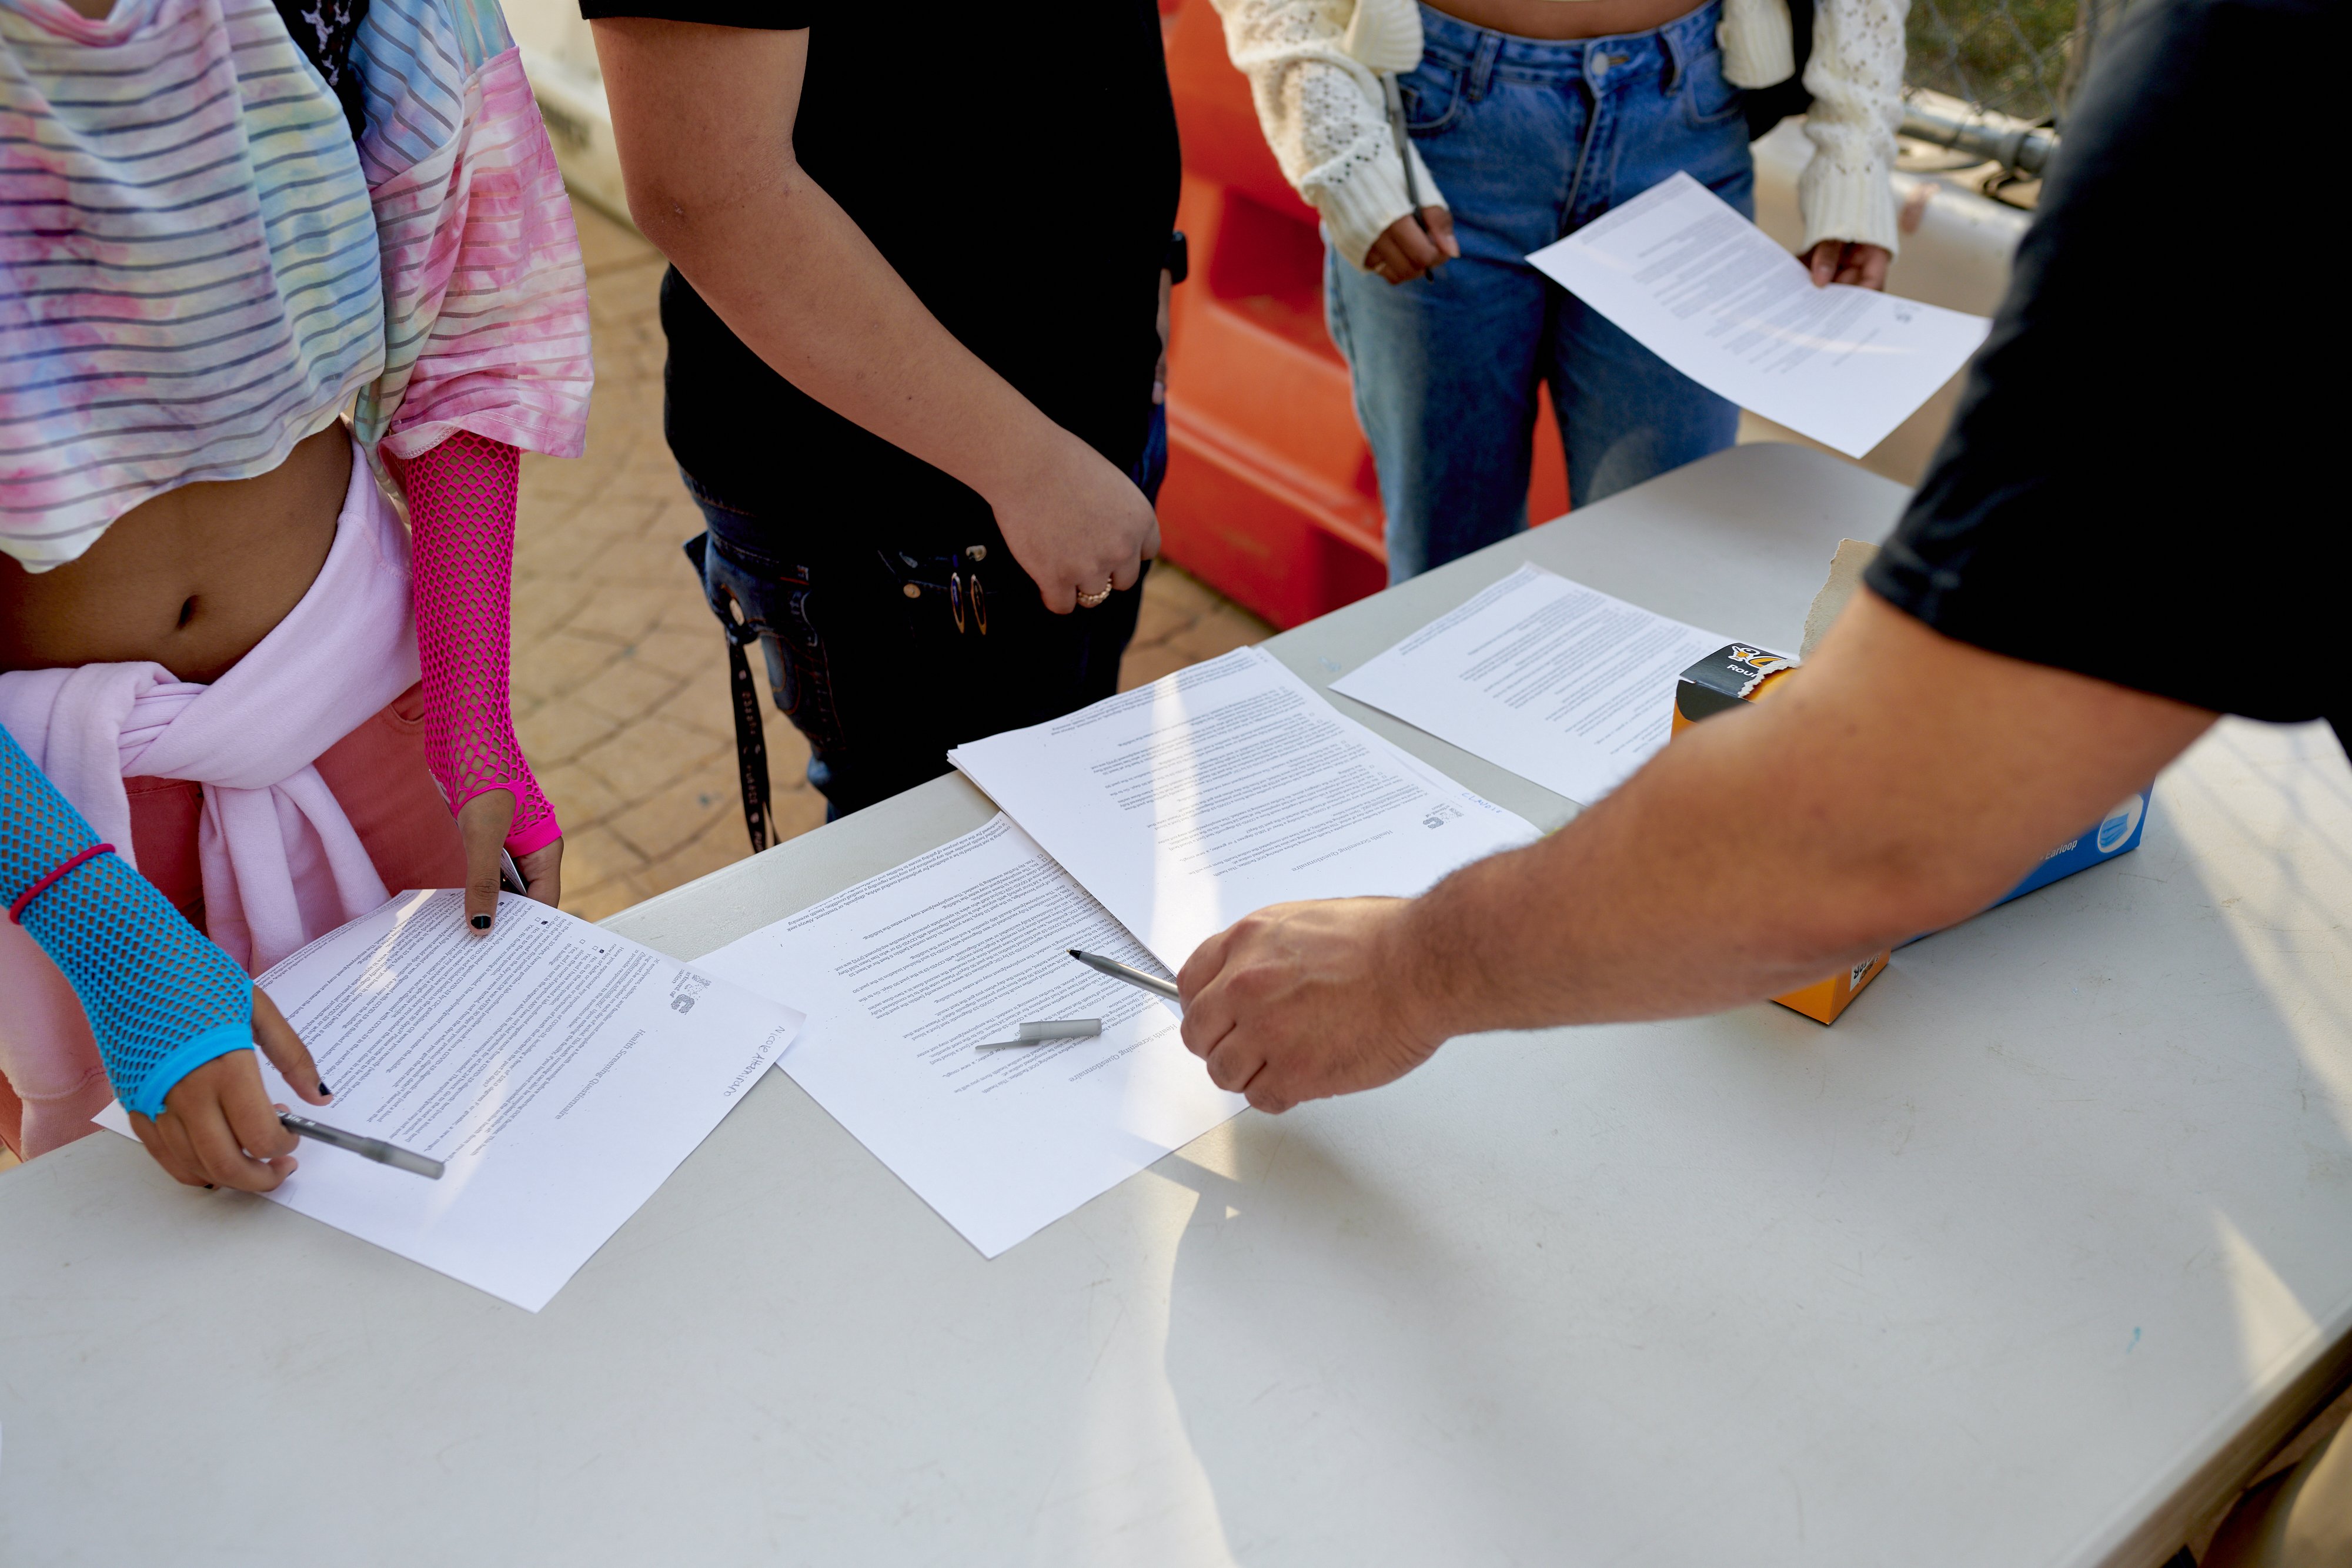 Students receive COVID screening forms and pens at a table from faculty.